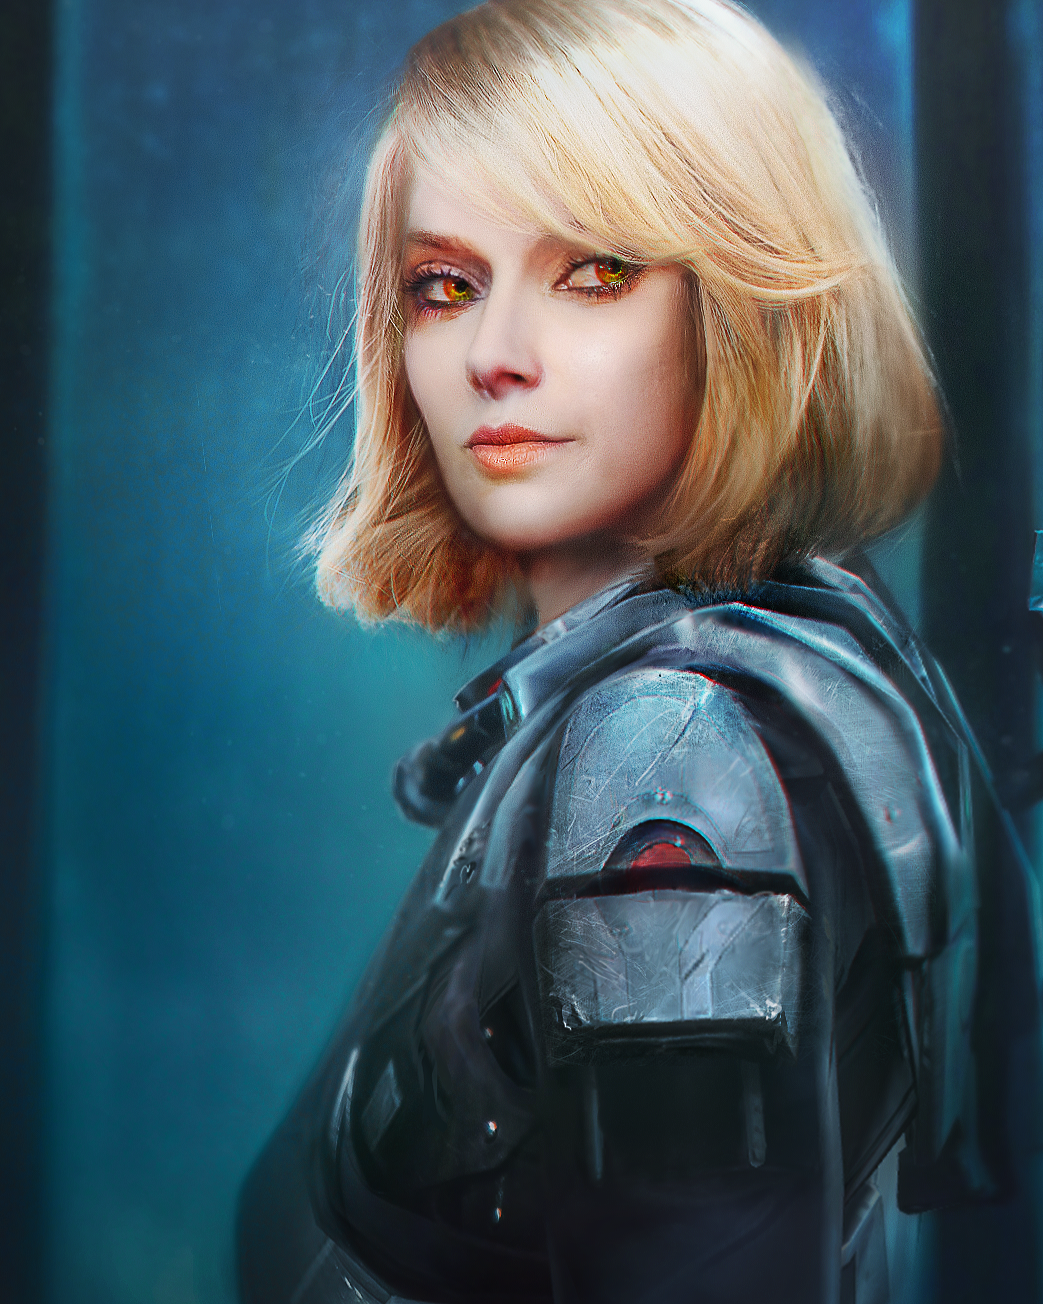 Lana Beniko Swtor View In 2920x1545px Here Other Composite